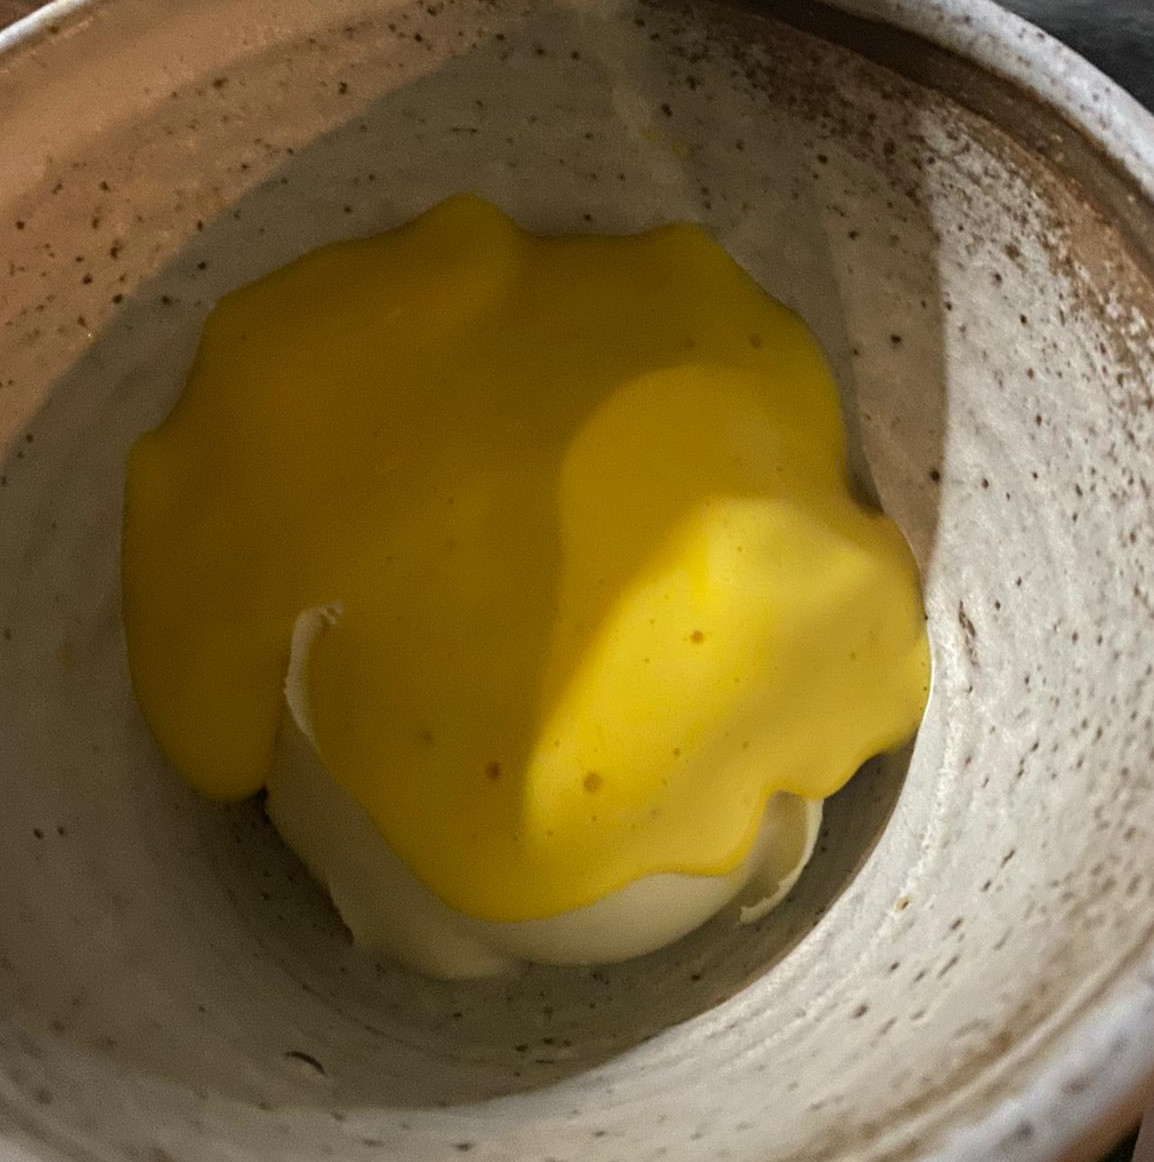 Clementine posset with a marmalade sabayon at P. Franco in Hackney was one of the best things Eater writers ate in London this week